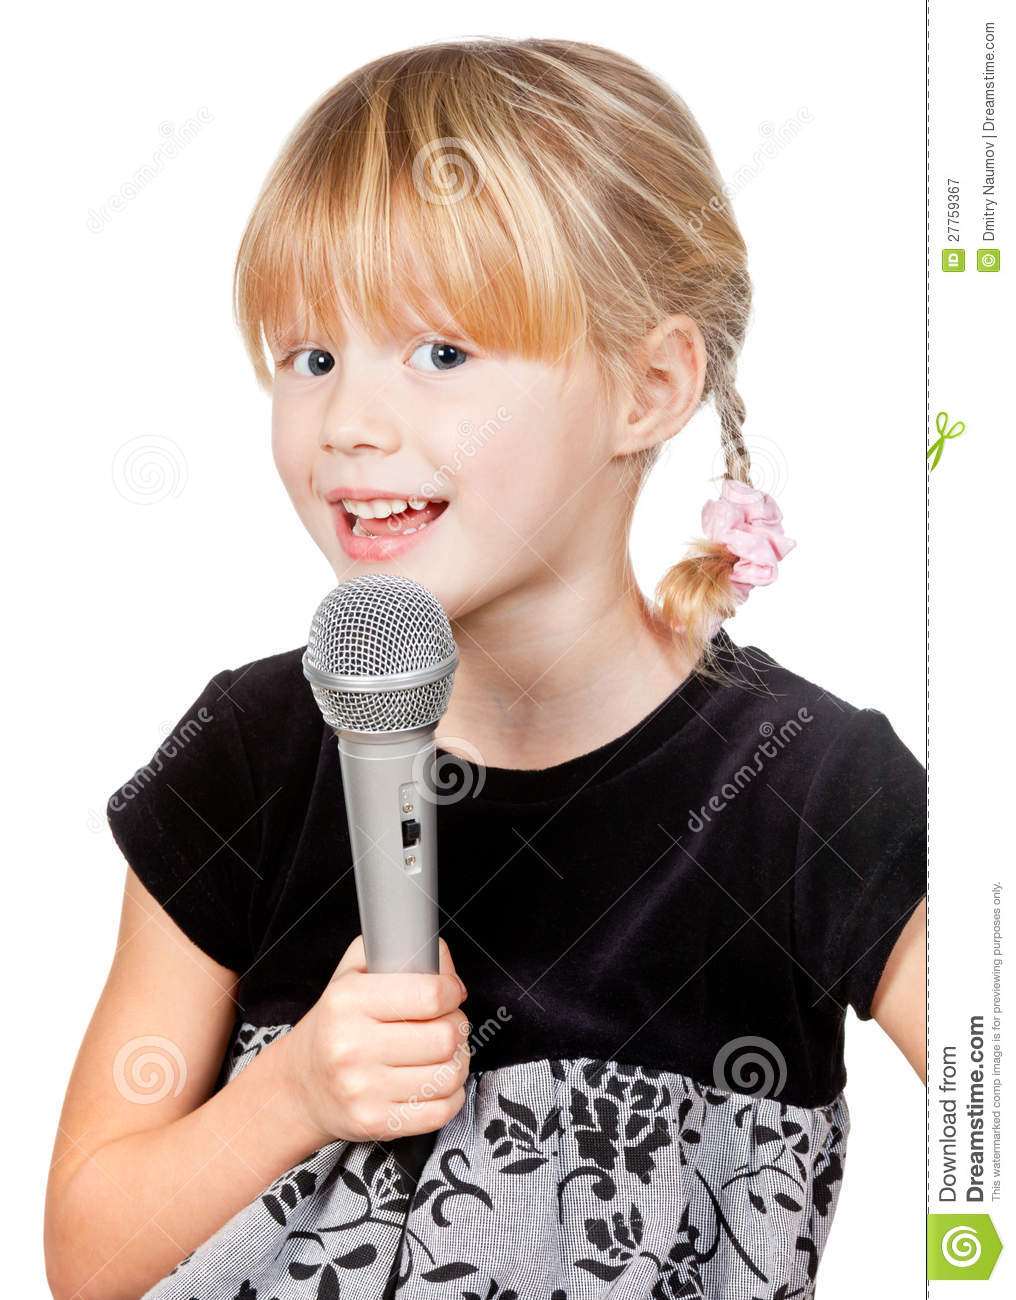 Child With Microphone Singing Royalty Free Stock